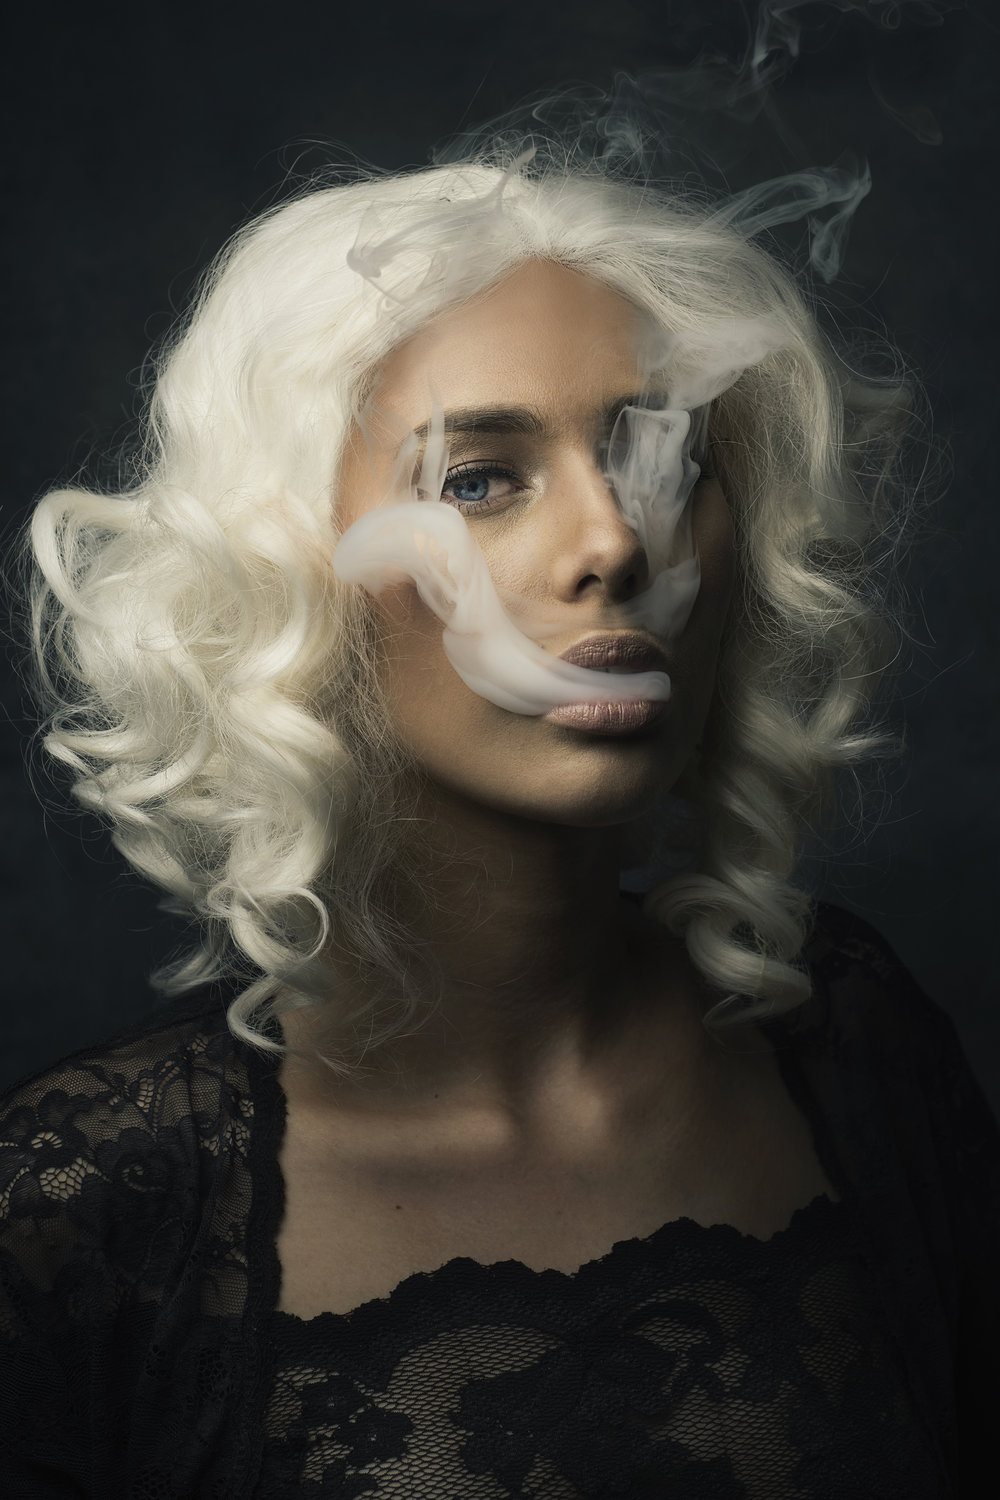 smoking girl vaping in a wig.jpg